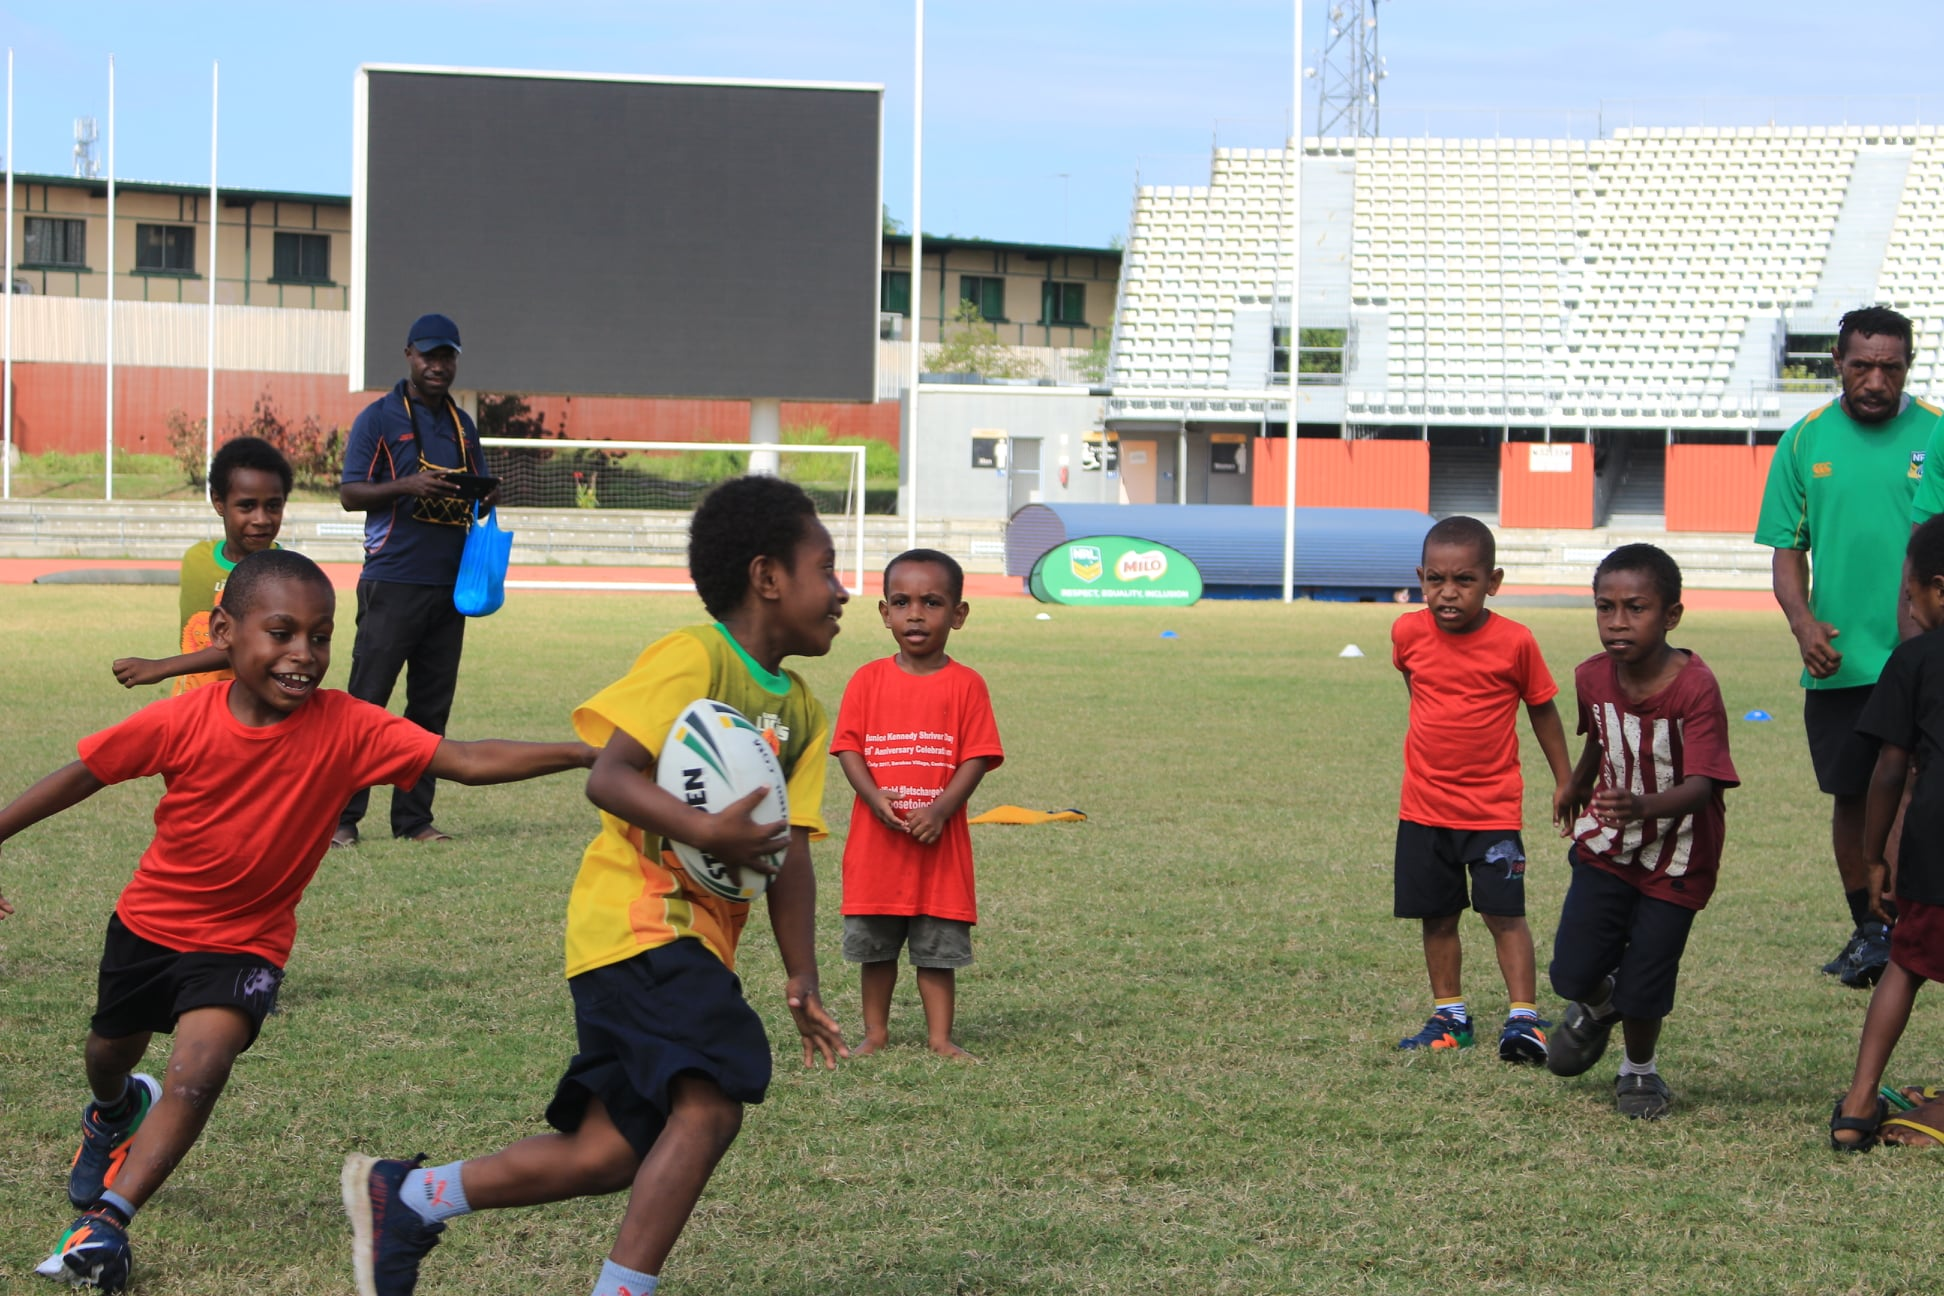 NRL in PNG launch Mini & Mod programs in Lae and Port Moresby